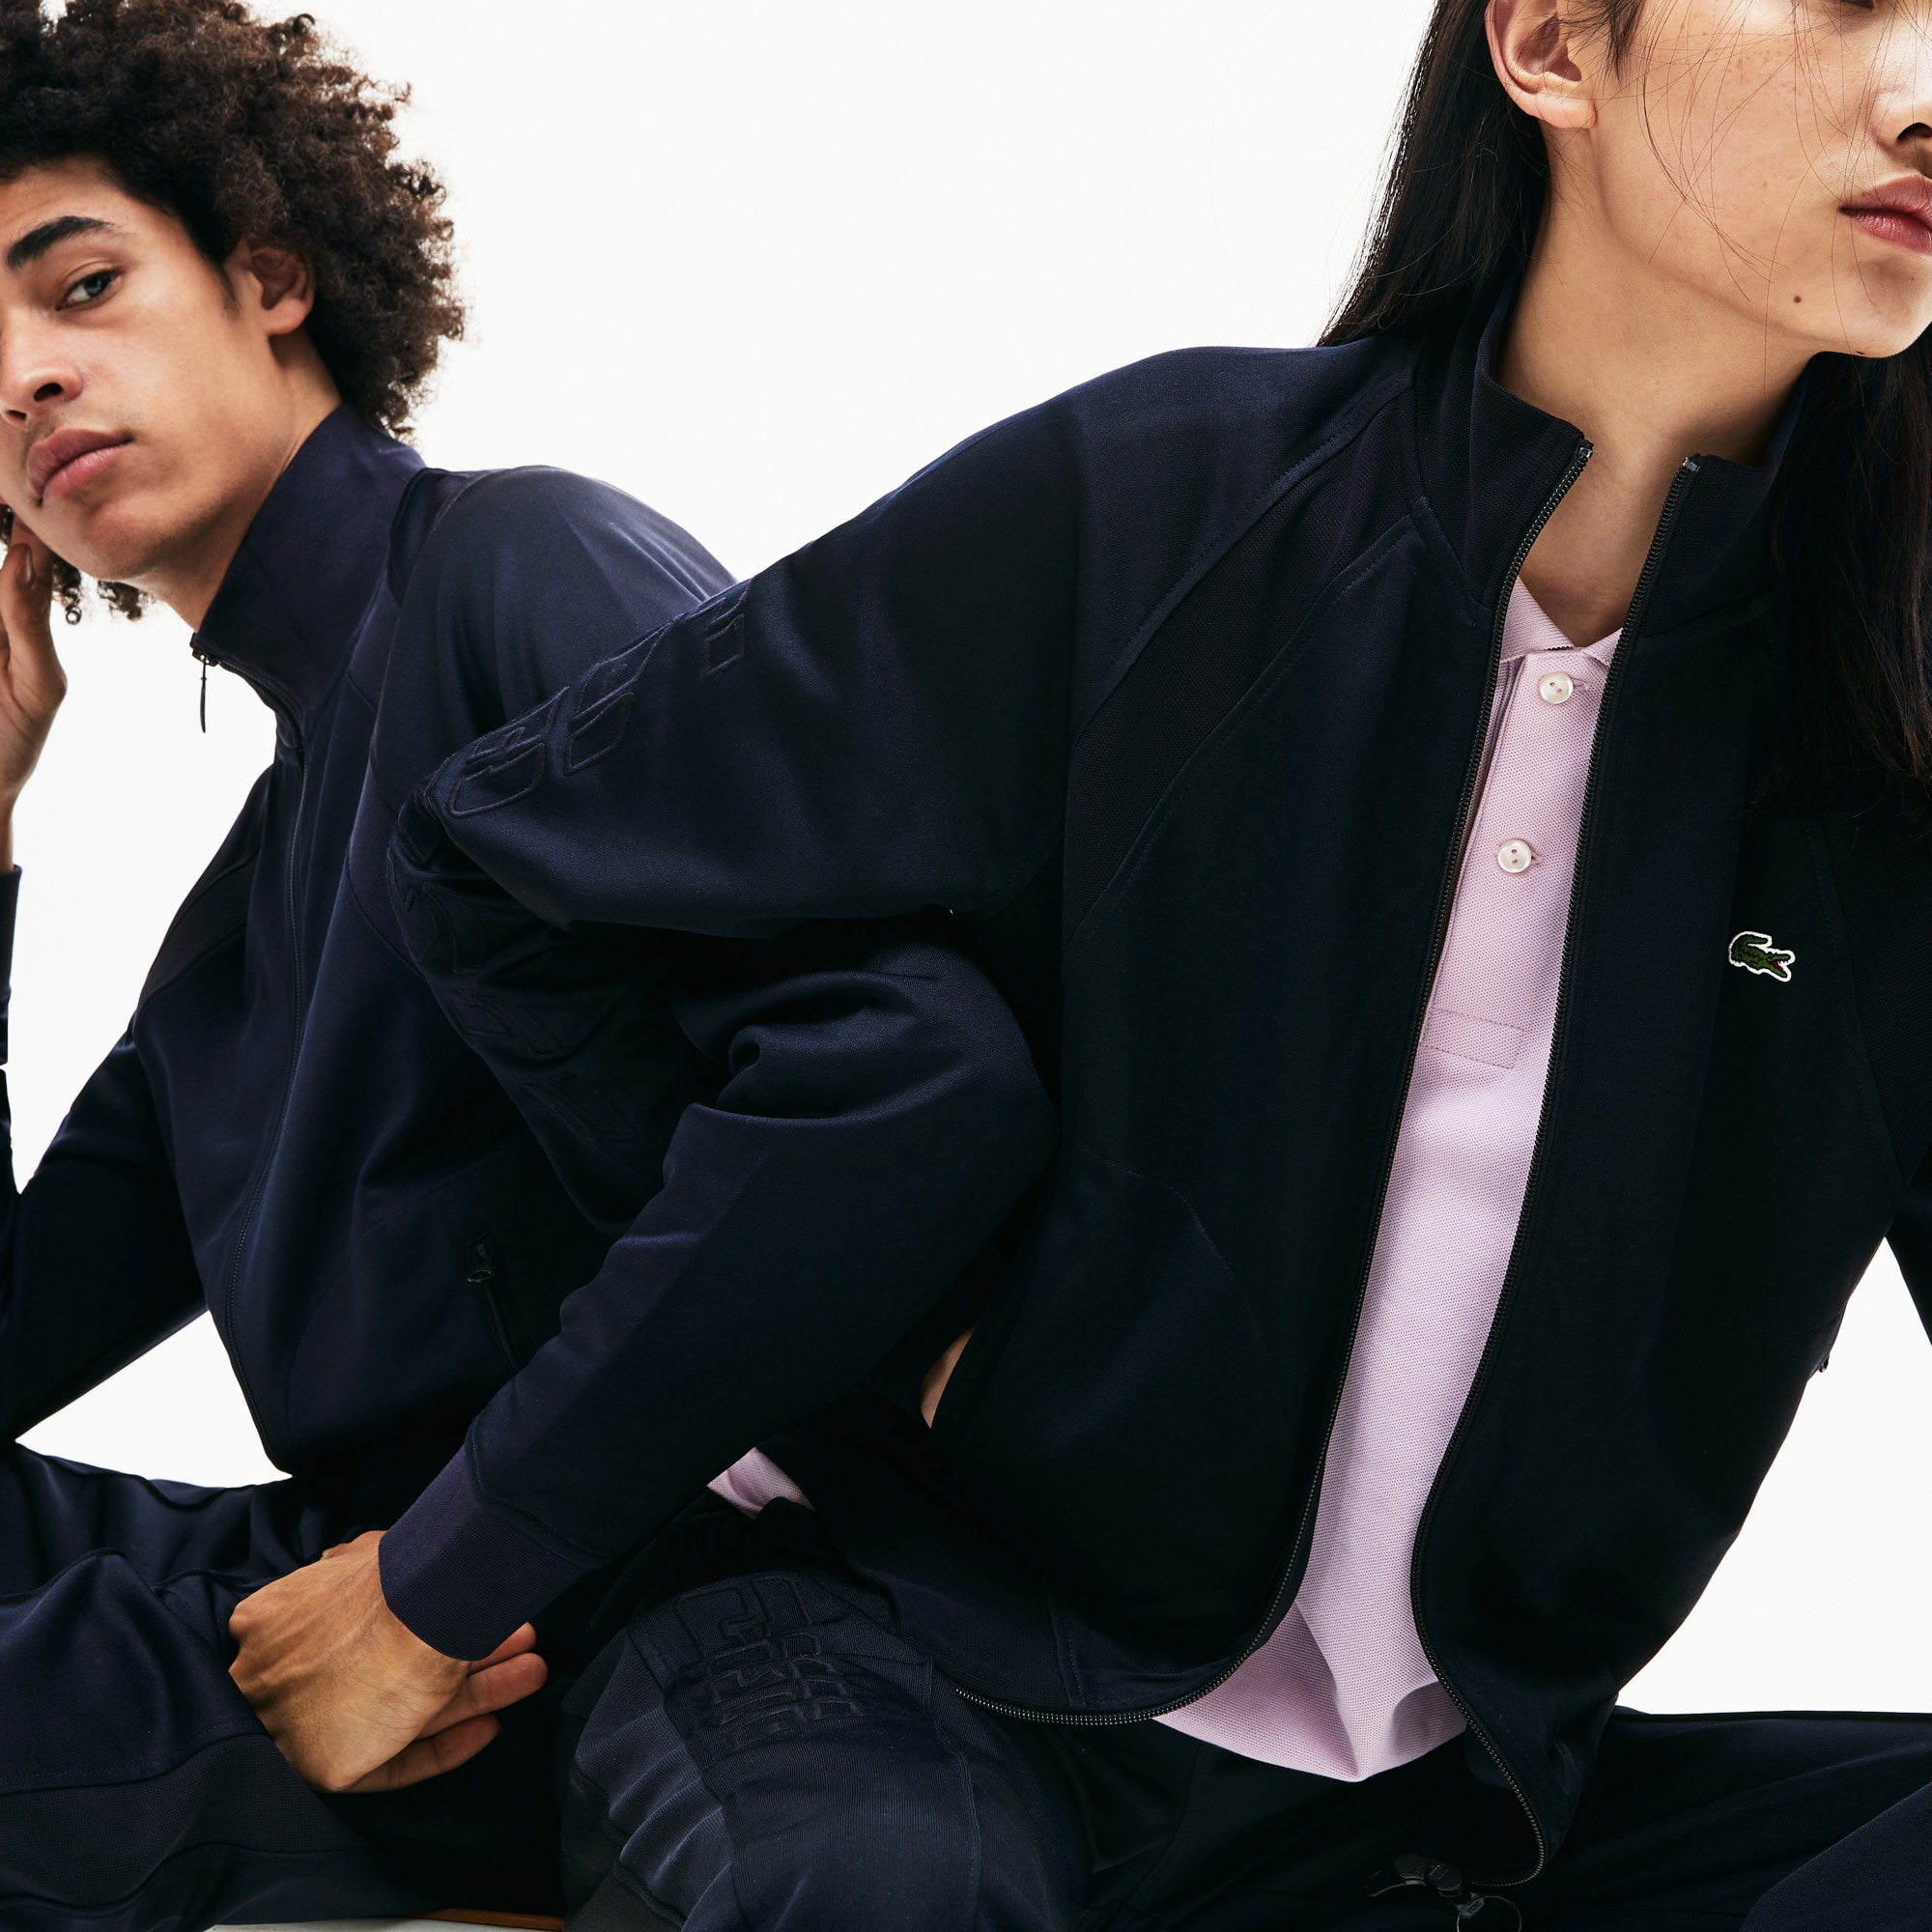 27ea426379 LACOSTE LIVE: Clothing, Footwear & fragrances collection